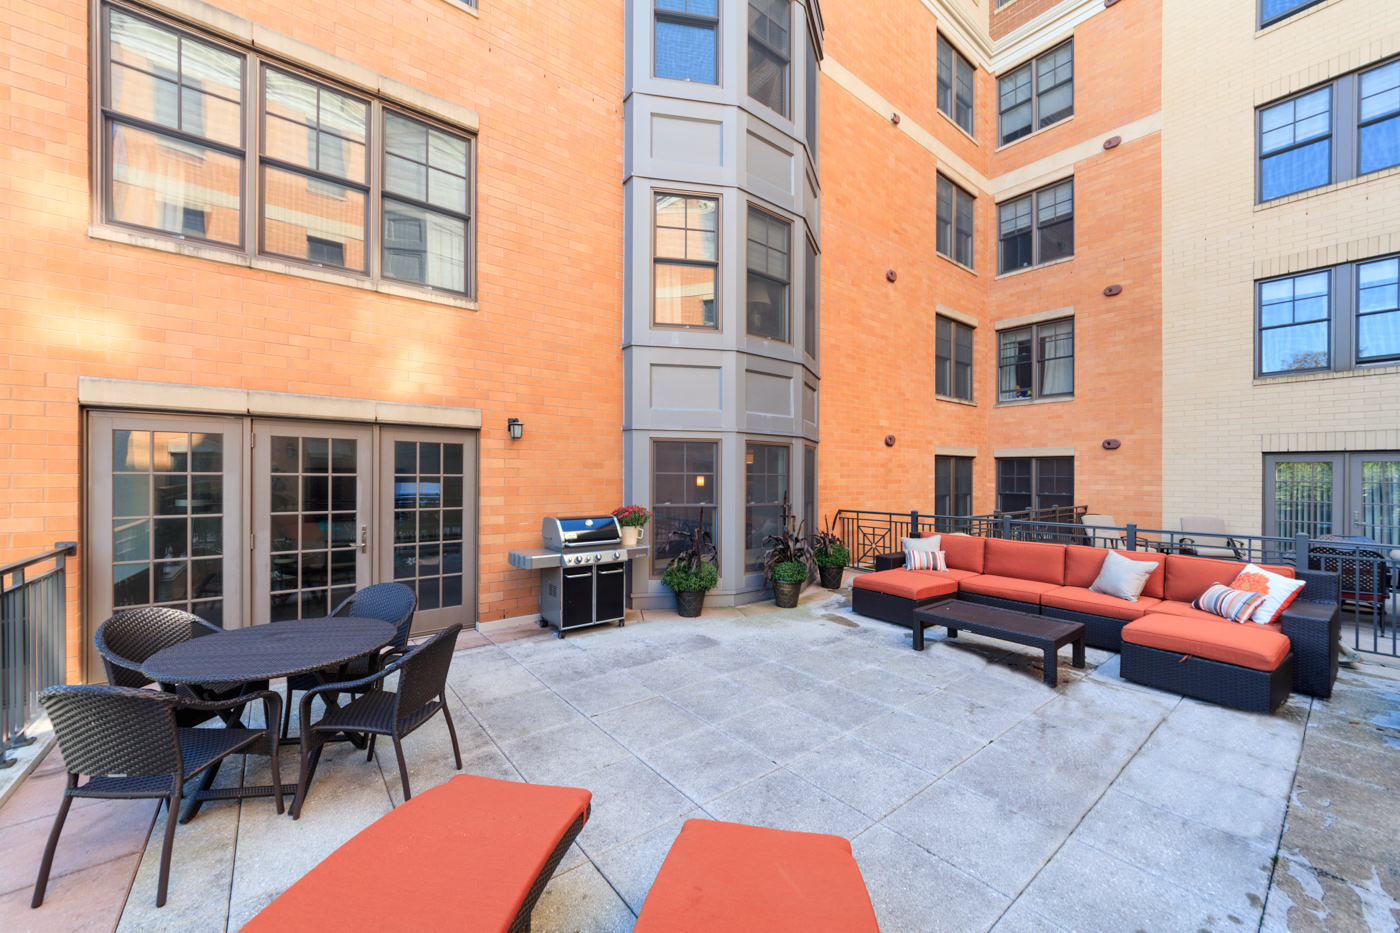 The Sue Adler Team Is Happy To Present Our Newest Listing For Sale At 40  West Park Place, Unit 212, Morristown, NJ 07960